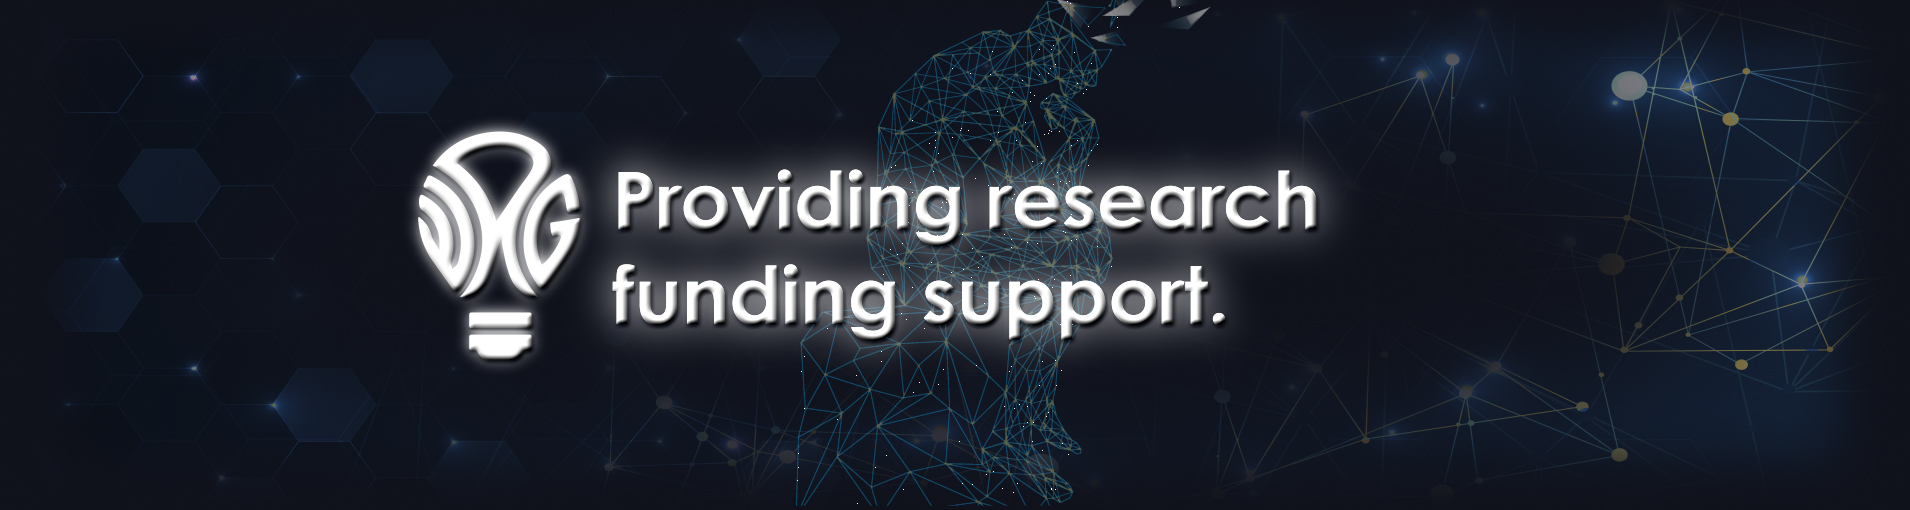 Providing Research Funding Support